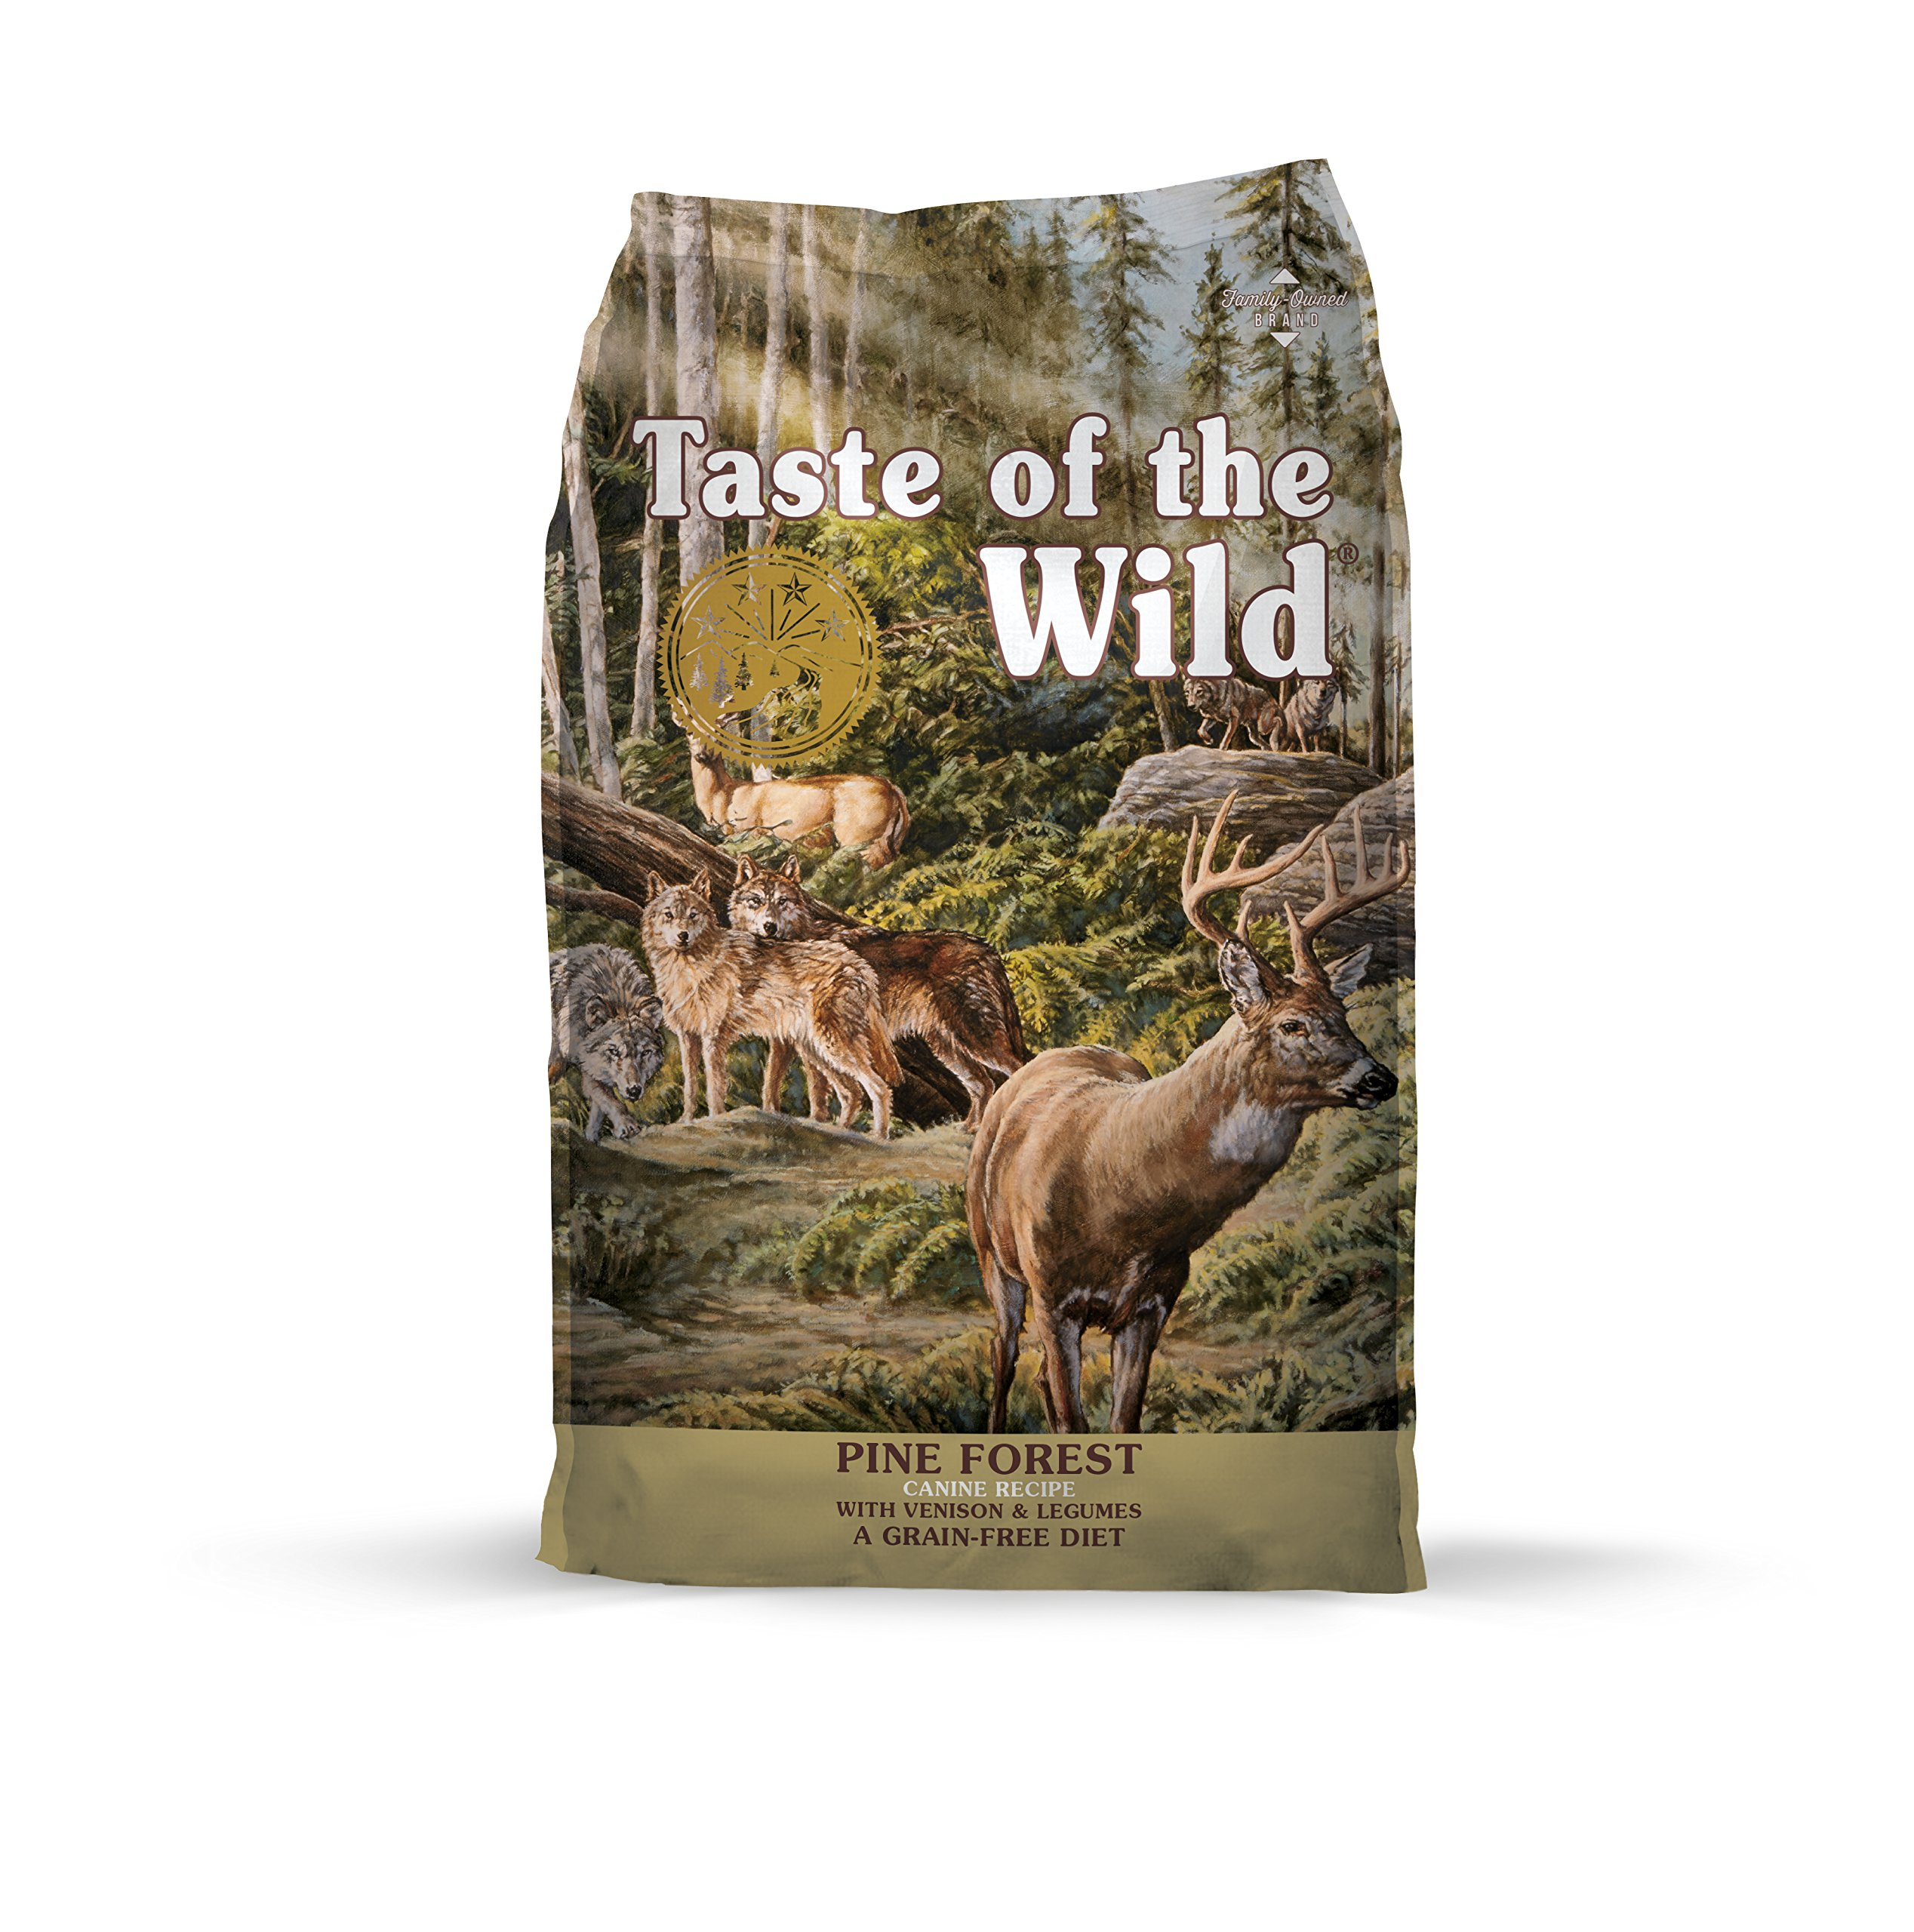 Taste of the Wild Grain Free High Protein Real Meat Recipe Pine Forest Premium Dry Dog Food by Taste of the Wild